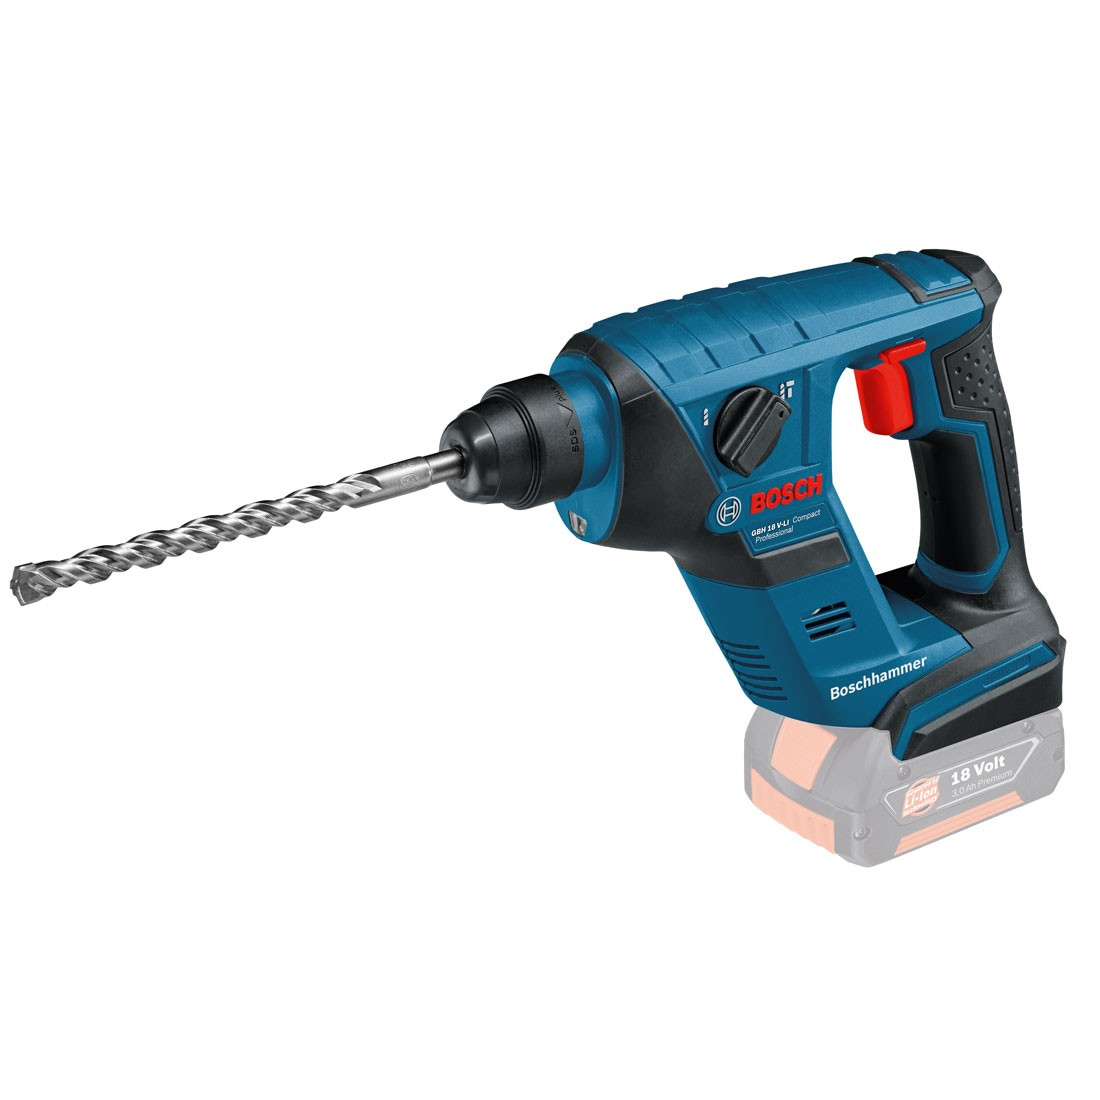 bosch gbh 18 v licp compact professional cordless sds plus rotary hammer body only 0611905300. Black Bedroom Furniture Sets. Home Design Ideas